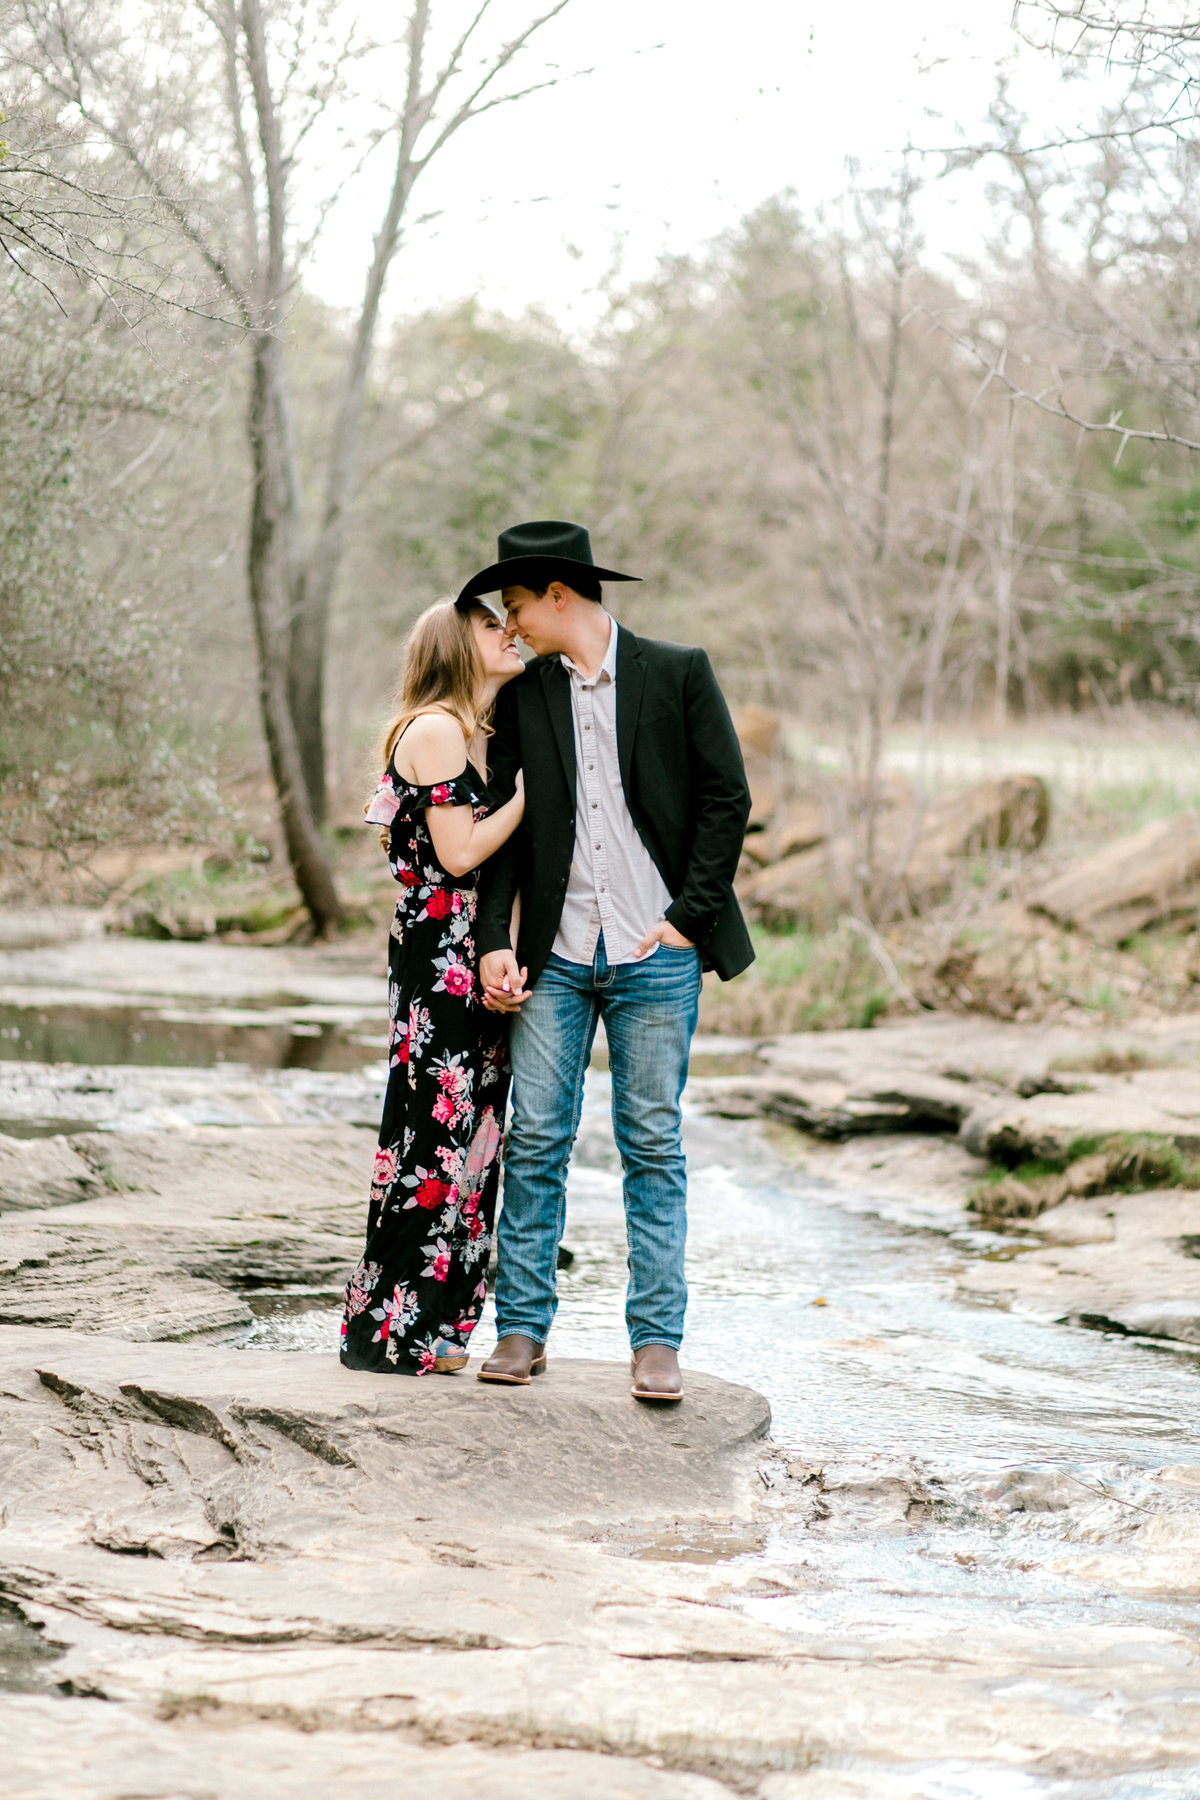 Becca-Jacob-Stone-Creek-Park-Engagement-Session-_-Flower-Mound-Wedding-Photographer-_-Emily-Nicole-Photo-71